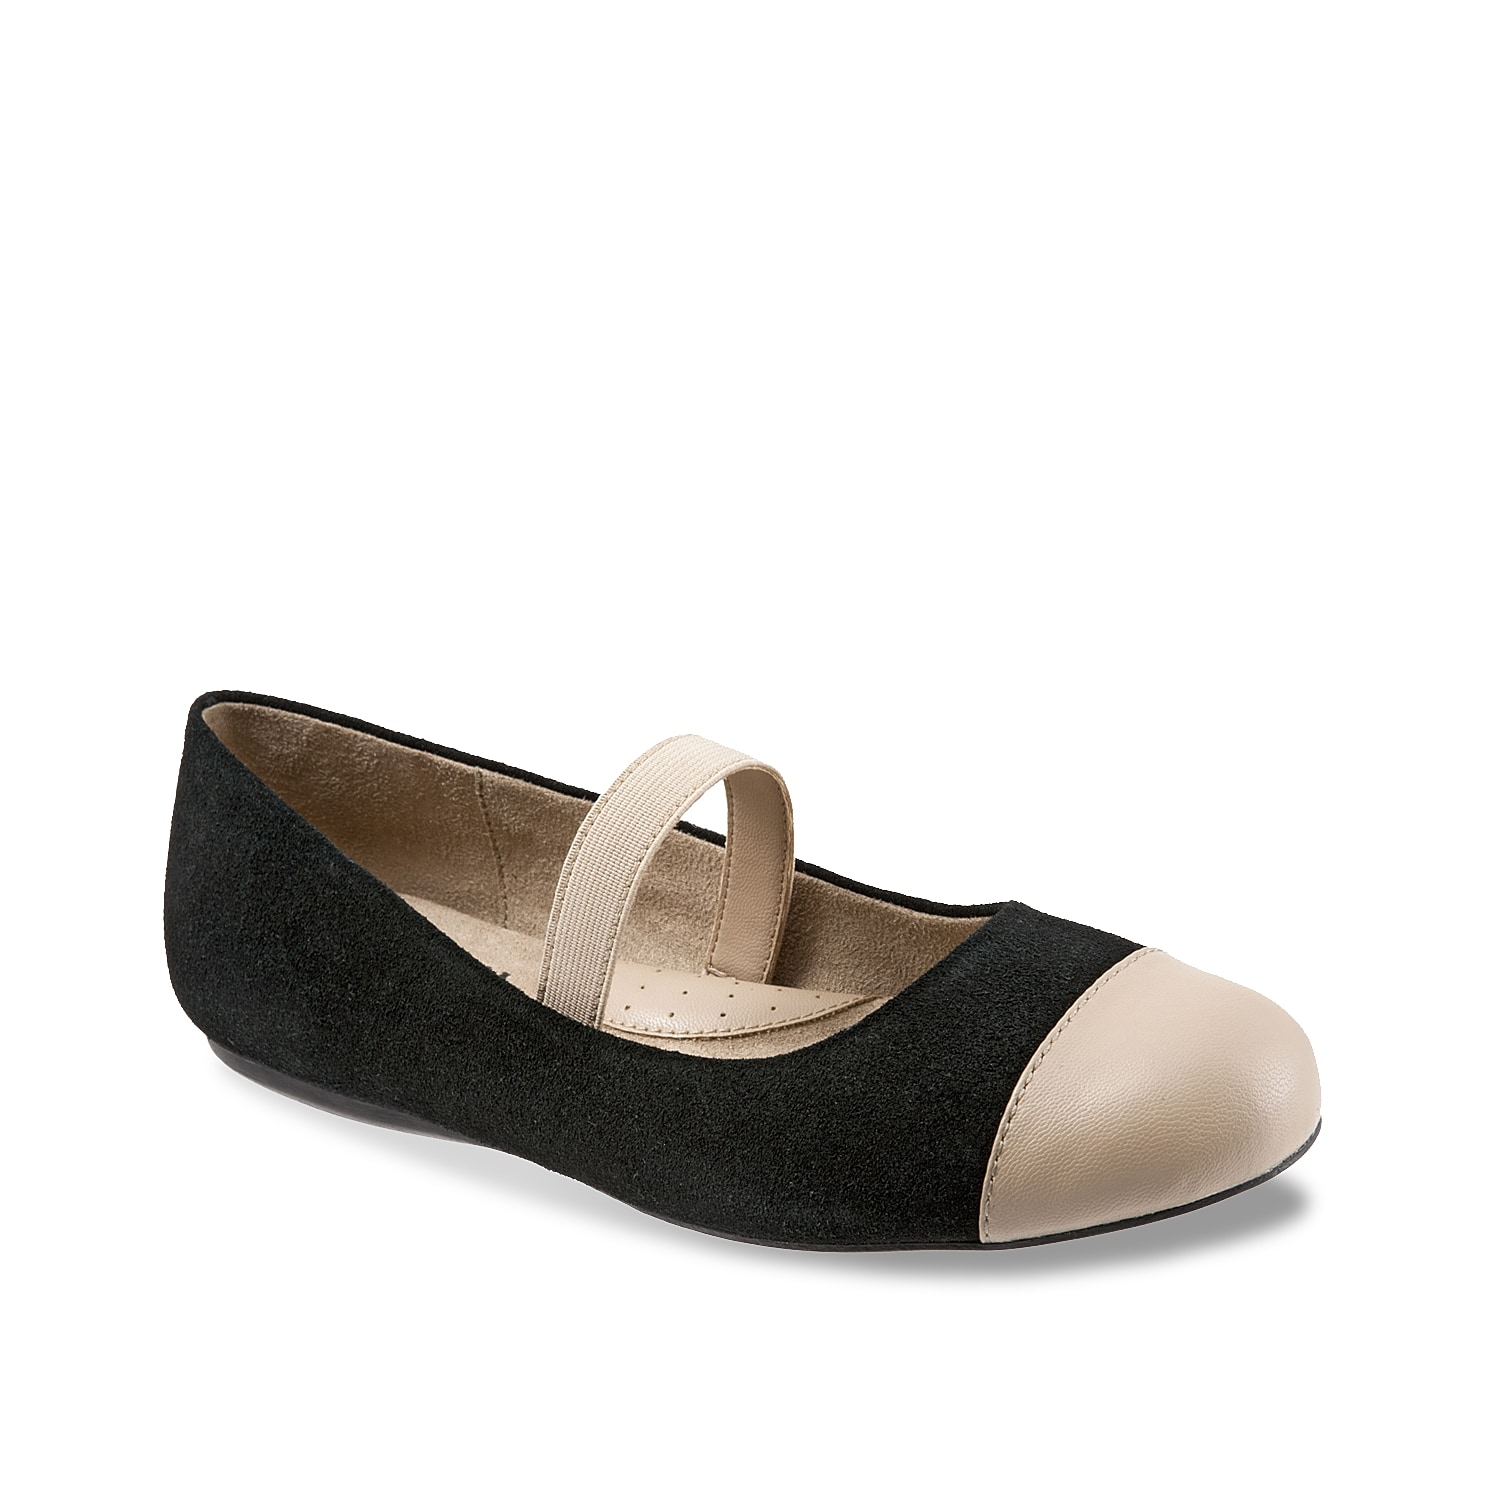 Keep a pair of ballet flats at the front of your closet for endless style transformations! The Softwalk Napa slip-on is fashioned with a simple cap toe and an elasticized Mary Jane strap.